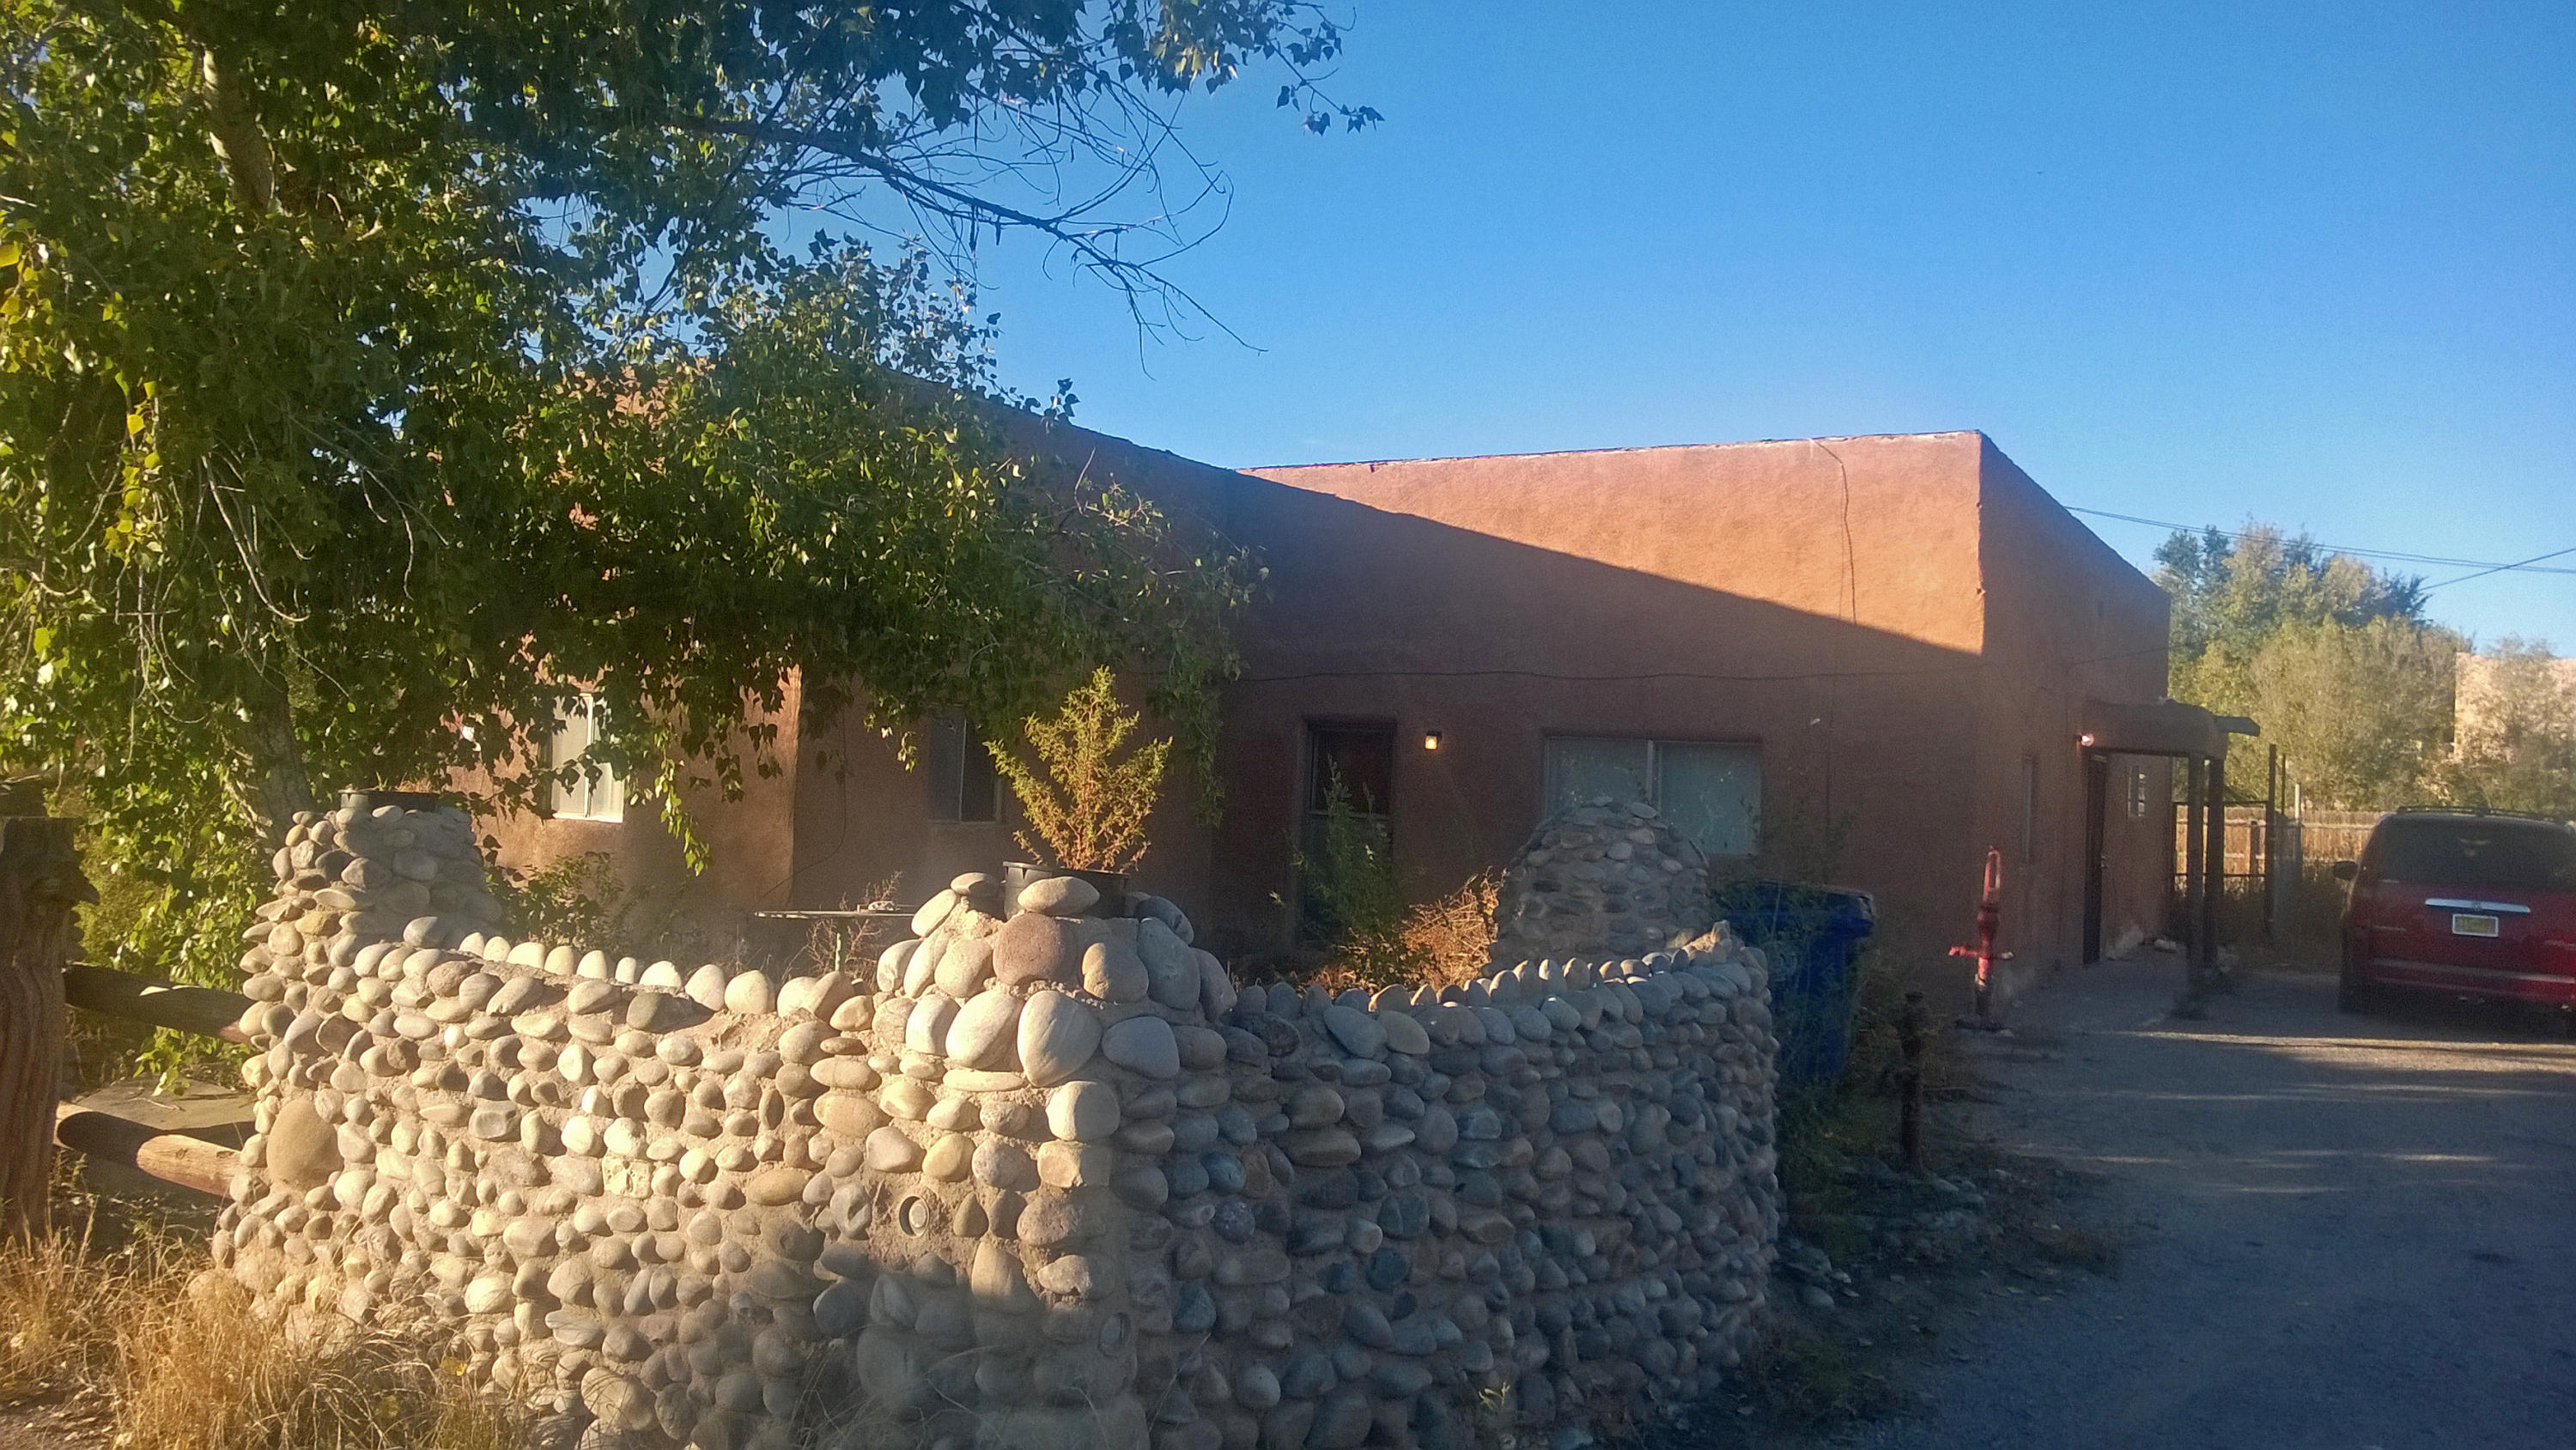 Location! Location! Location! Quiet North Valley Street.  Property is Located at the end of a very secluded street.. This property includes two separate lots. One lot has a 1,614 Square Foot Home Second Lot has a 1,680 Square Foot Garage Shop with possible In-Law Quarters. This Property has incredible Potential!!!*** Property/Listing Includes Two Lots. Lot to the West has home.  Lot to the east has shop/garage.  West lot is 0.15 Acre (67 X 97):  East lot is 0.17 Acre (75 X 97:  Total Included Acreage 0.32...***** Title and Survey Defects are present, steps are being taken to address the defects.  Title and Survey Defects may delay a timely closing.  Any sale must be subject to resolving Title and Survey Defects *****